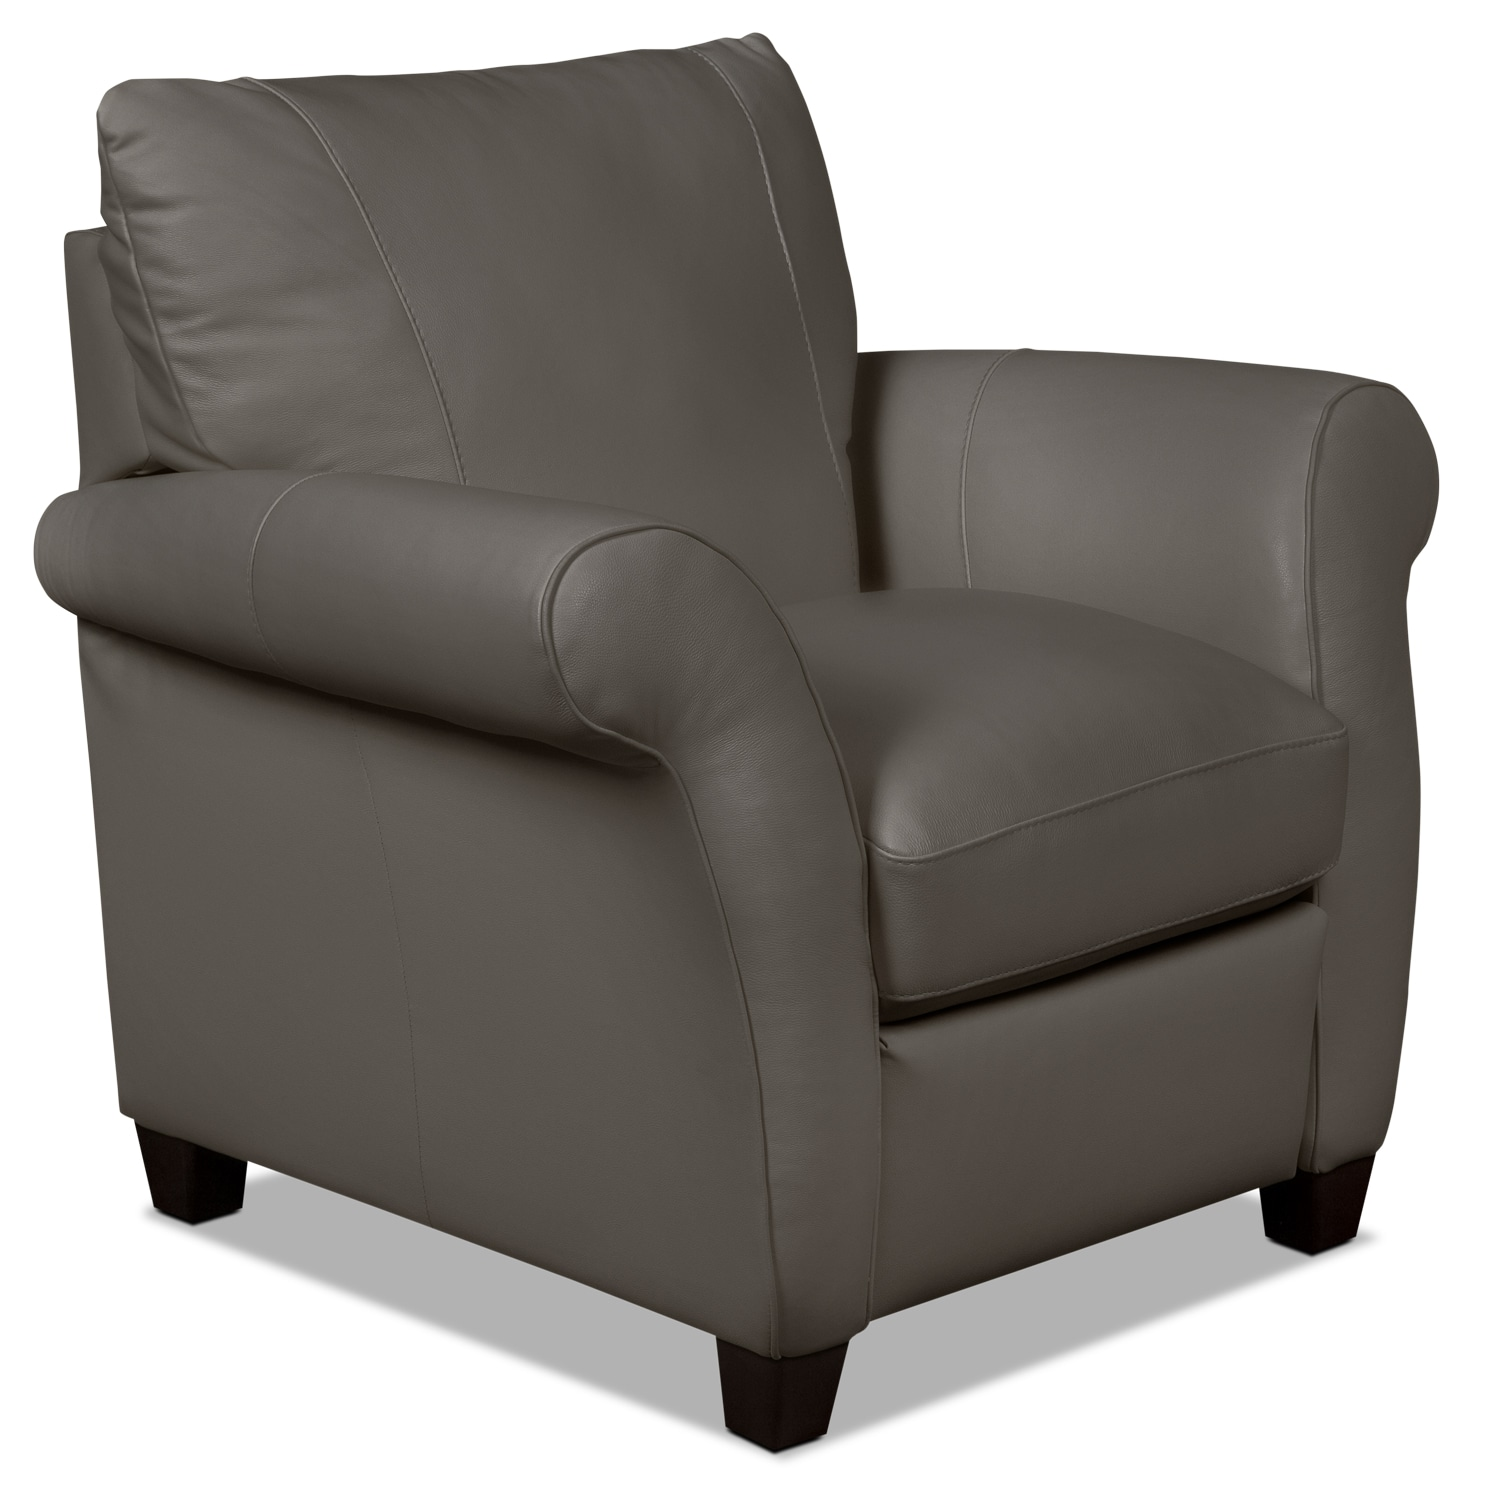 Layla Genuine Leather Reclining Chair – Taupe